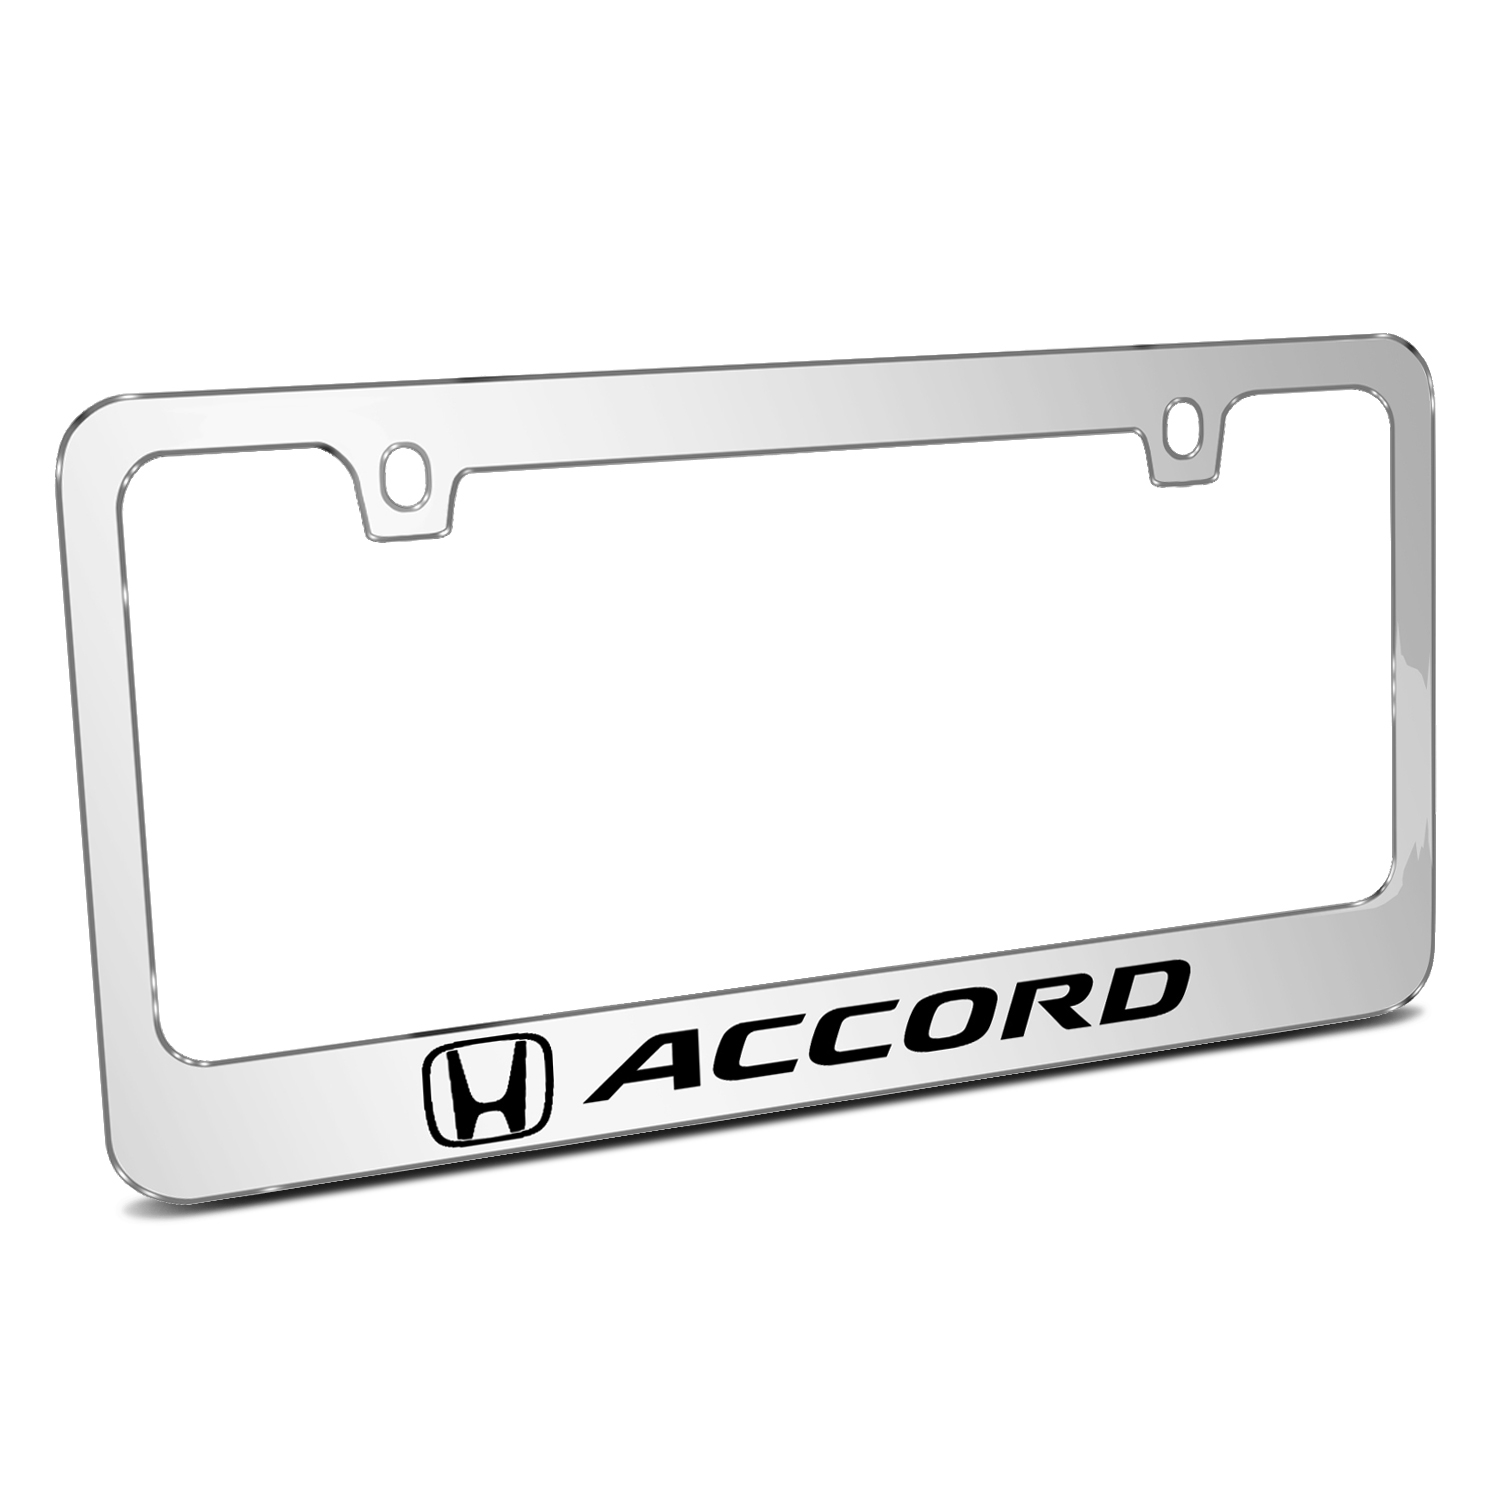 Honda Accord Mirror Chrome Metal License Plate Frame